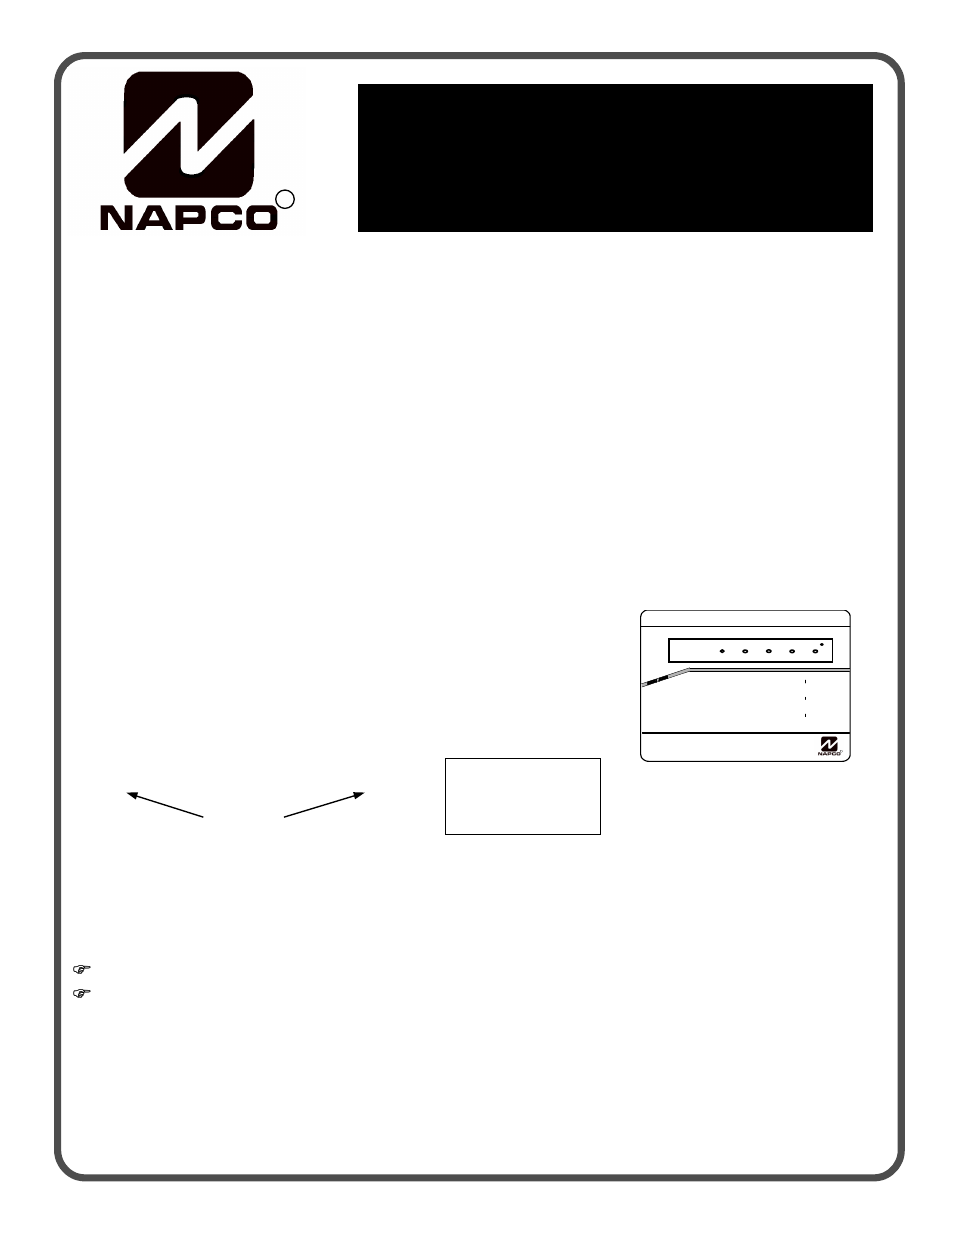 napco security technologies gem p1632 user manual 16 pages also rh manualsdir com gemini rp8 security system manual gemini home security system manual